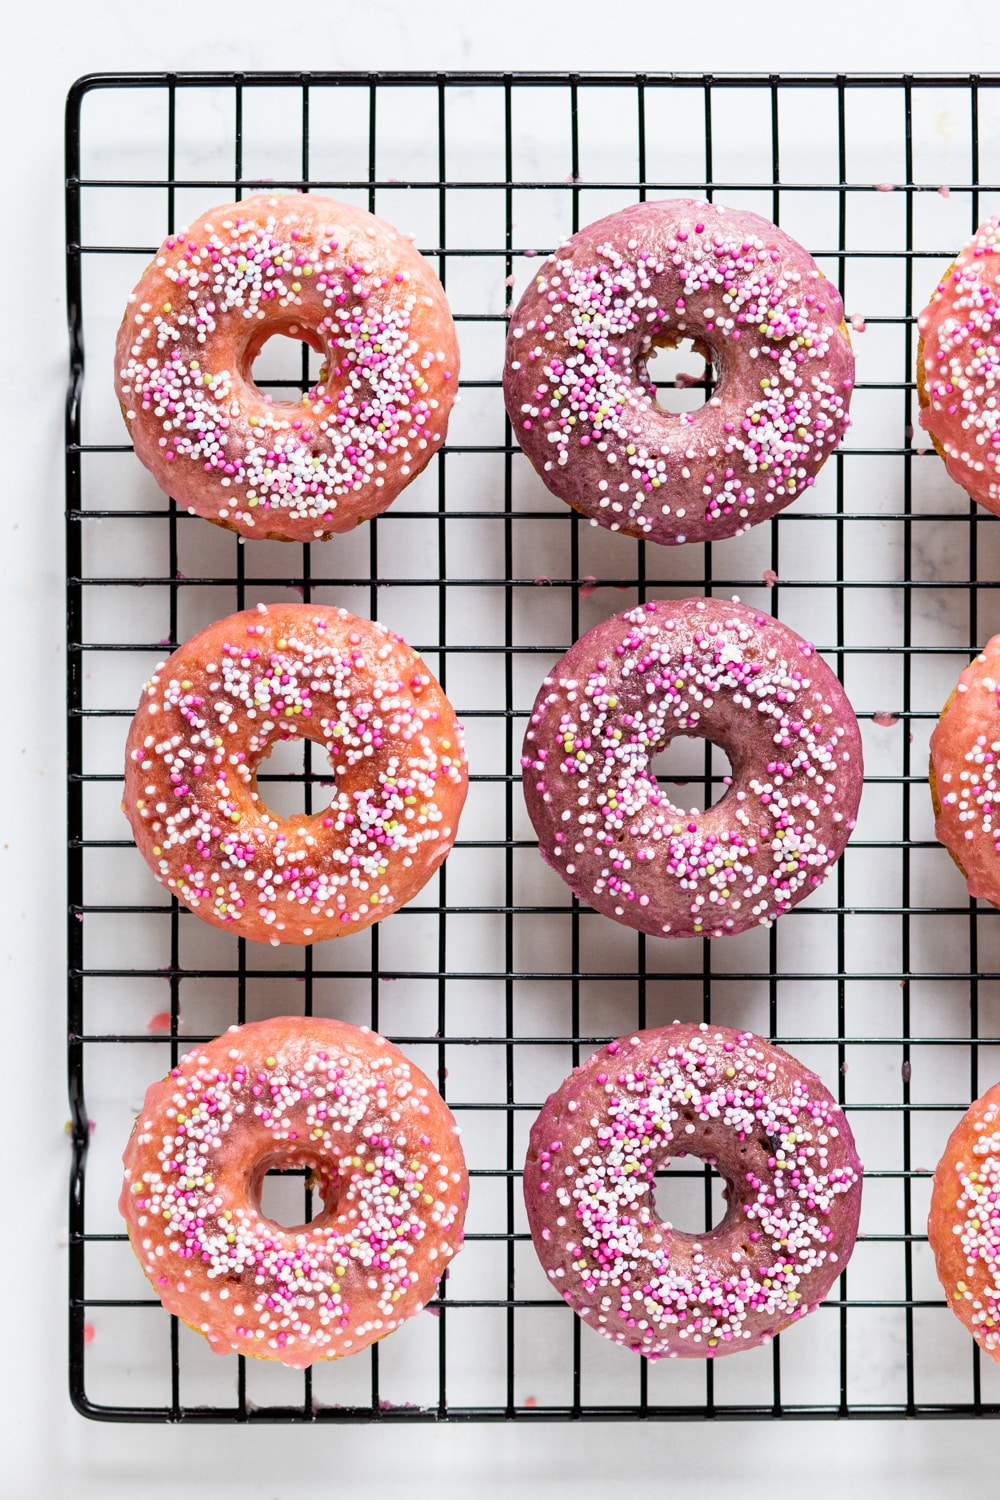 An overhead view of two rows of vegan donuts with three donuts in each row on a black wire rack. There is pink glaze with white, pink, and yellow ball sprinkles on top.